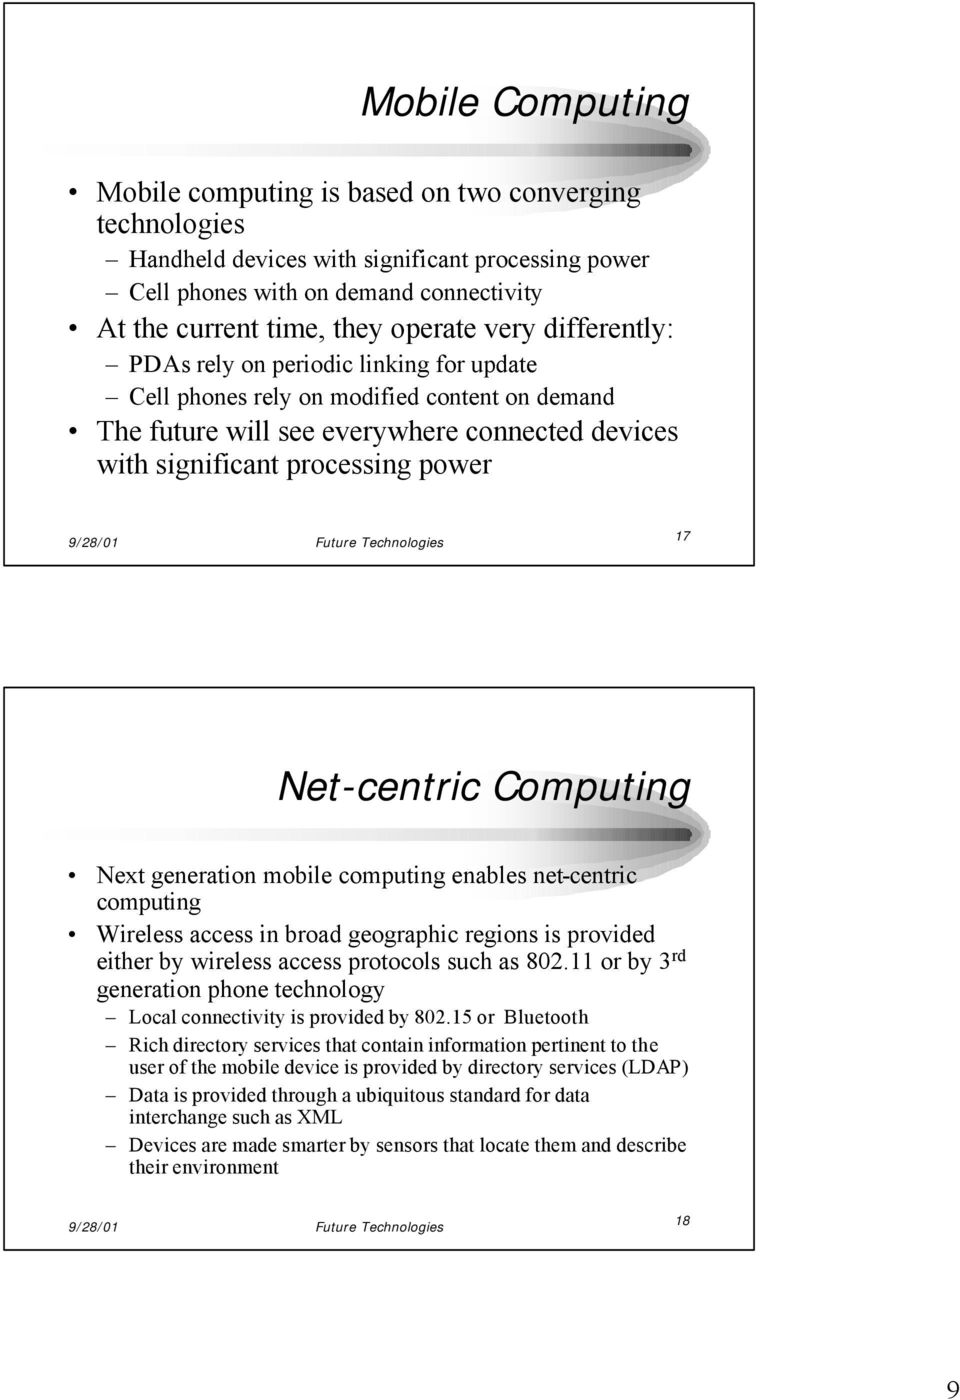 Net-centric Computing Next generation mobile computing enables net-centric computing Wireless access in broad geographic regions is provided either by wireless access protocols such as 802.